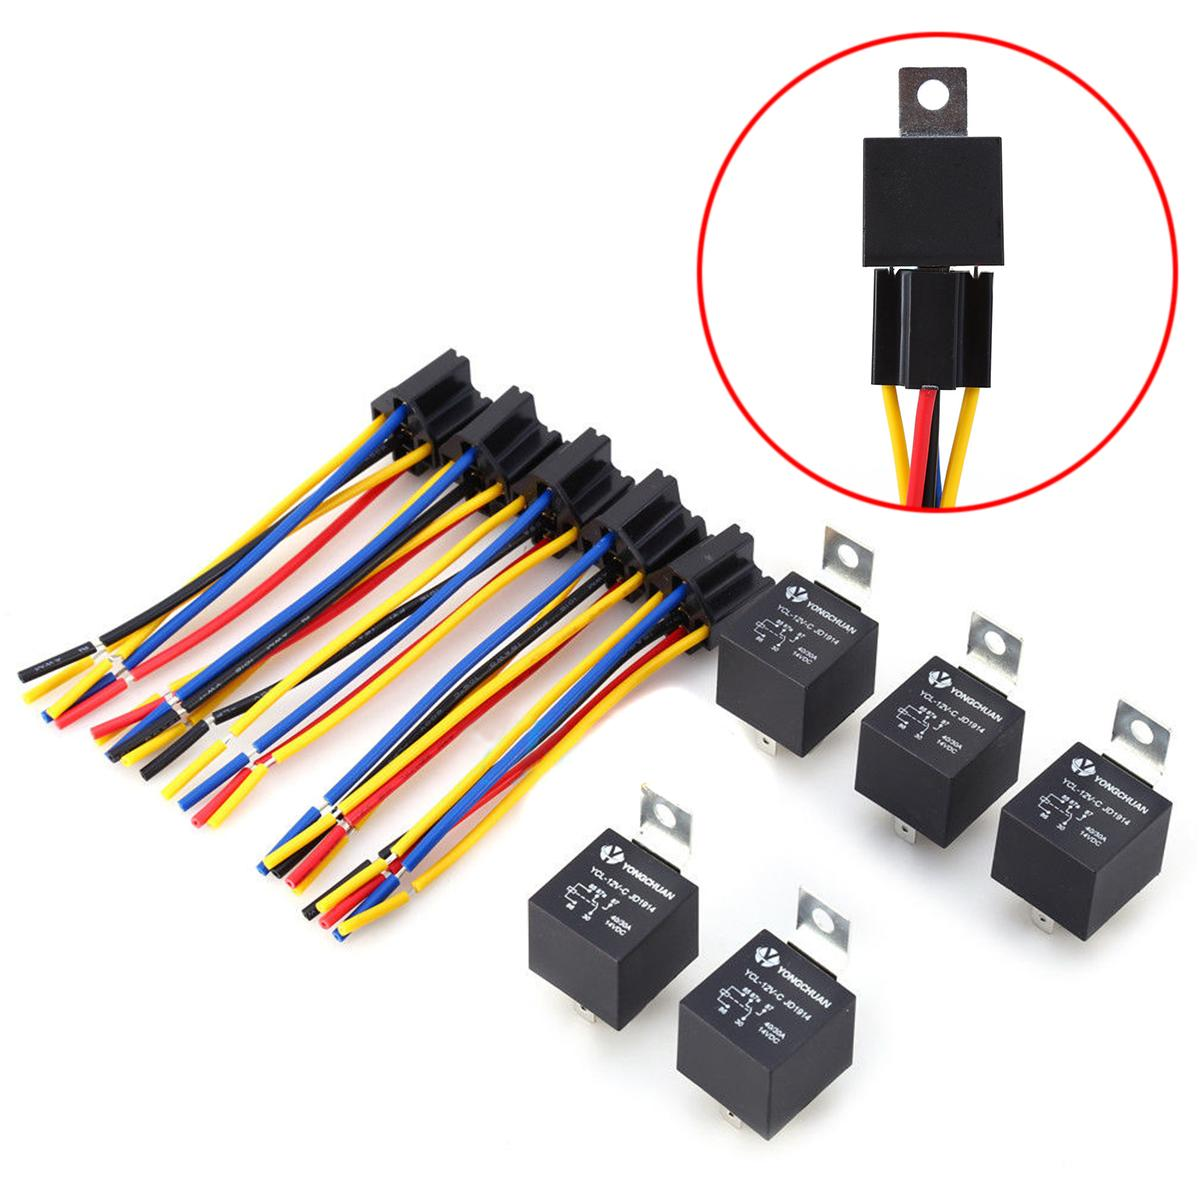 Astonishing 2019 Dc 12V 40A Amp Relay Socket Spdt 5 Pin 5 Wire Ycl 12V C Wiring Digital Resources Spoatbouhousnl